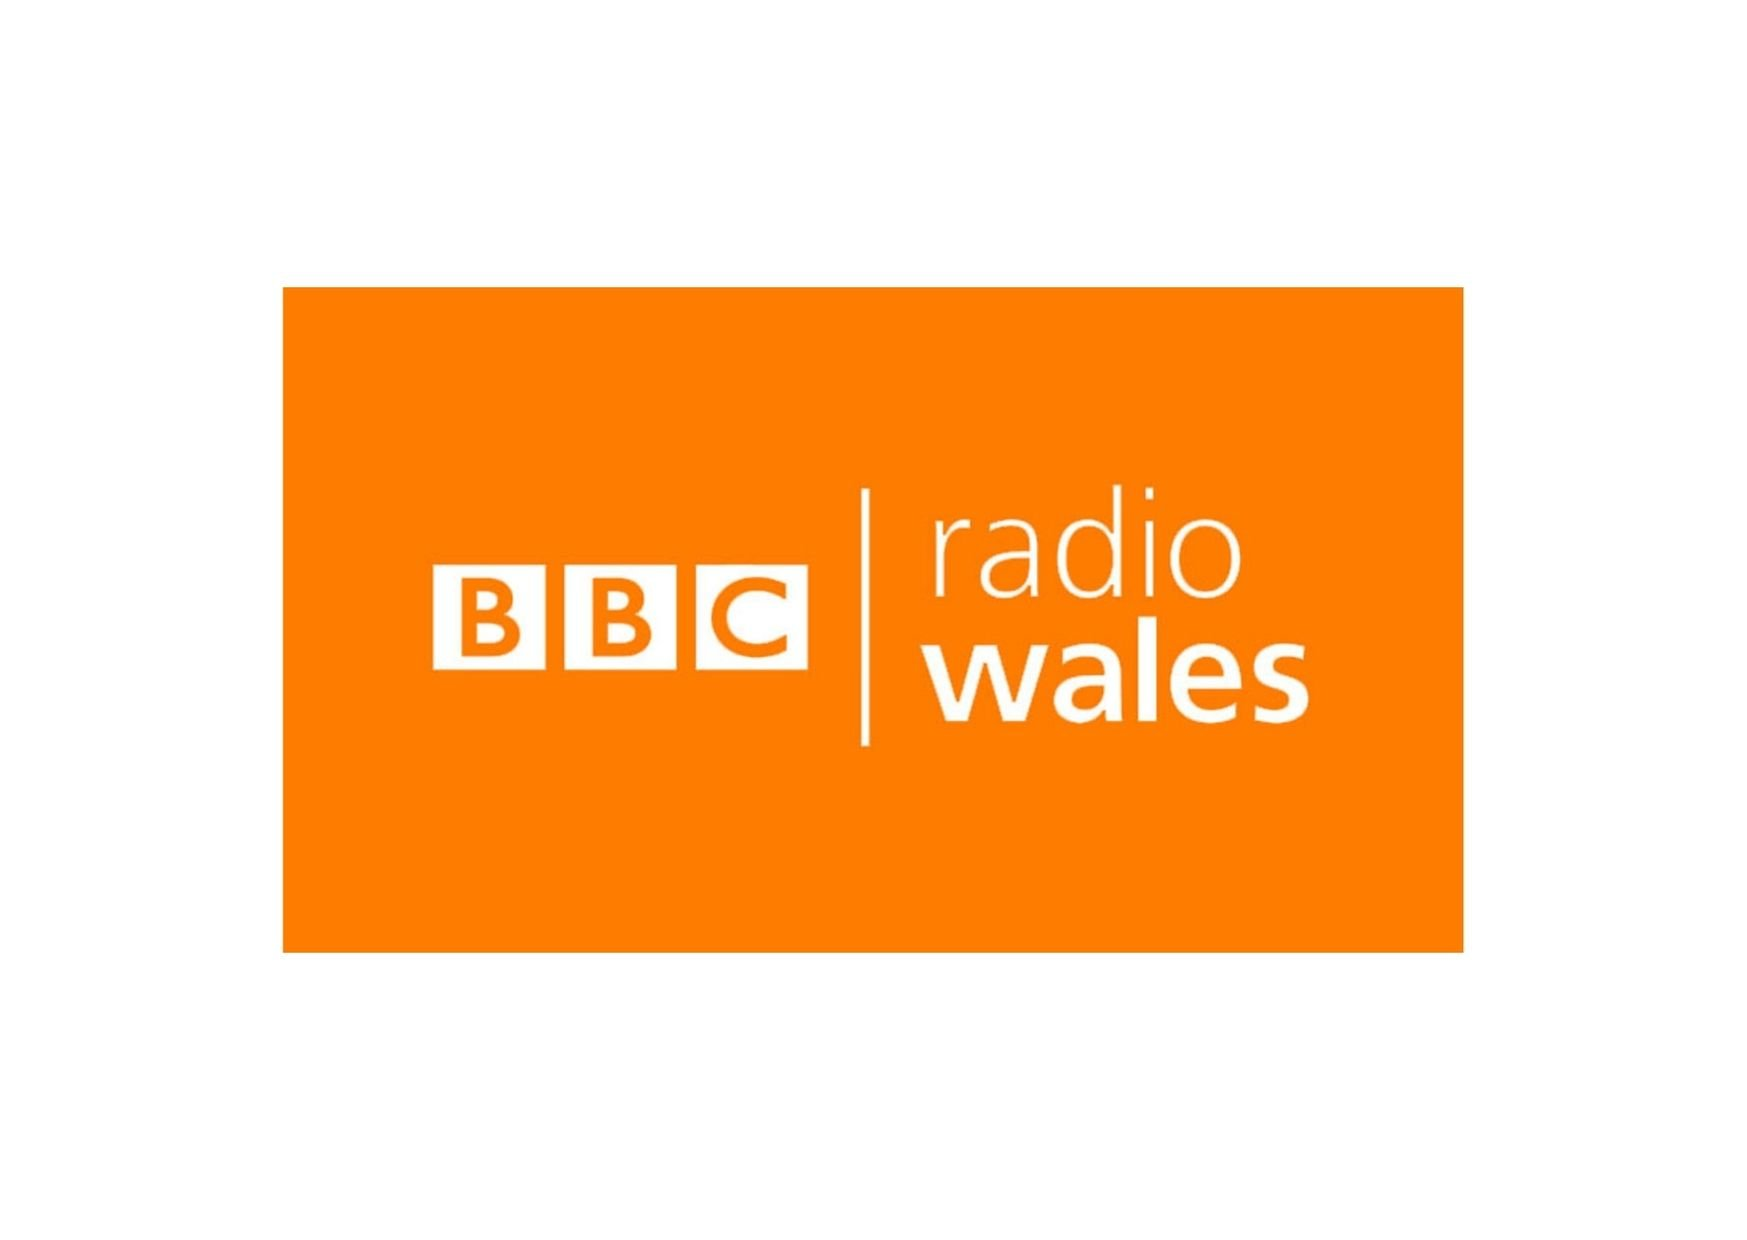 Noreena's Interview for BBC Radio Wales, The Idea (Lonely Planet)